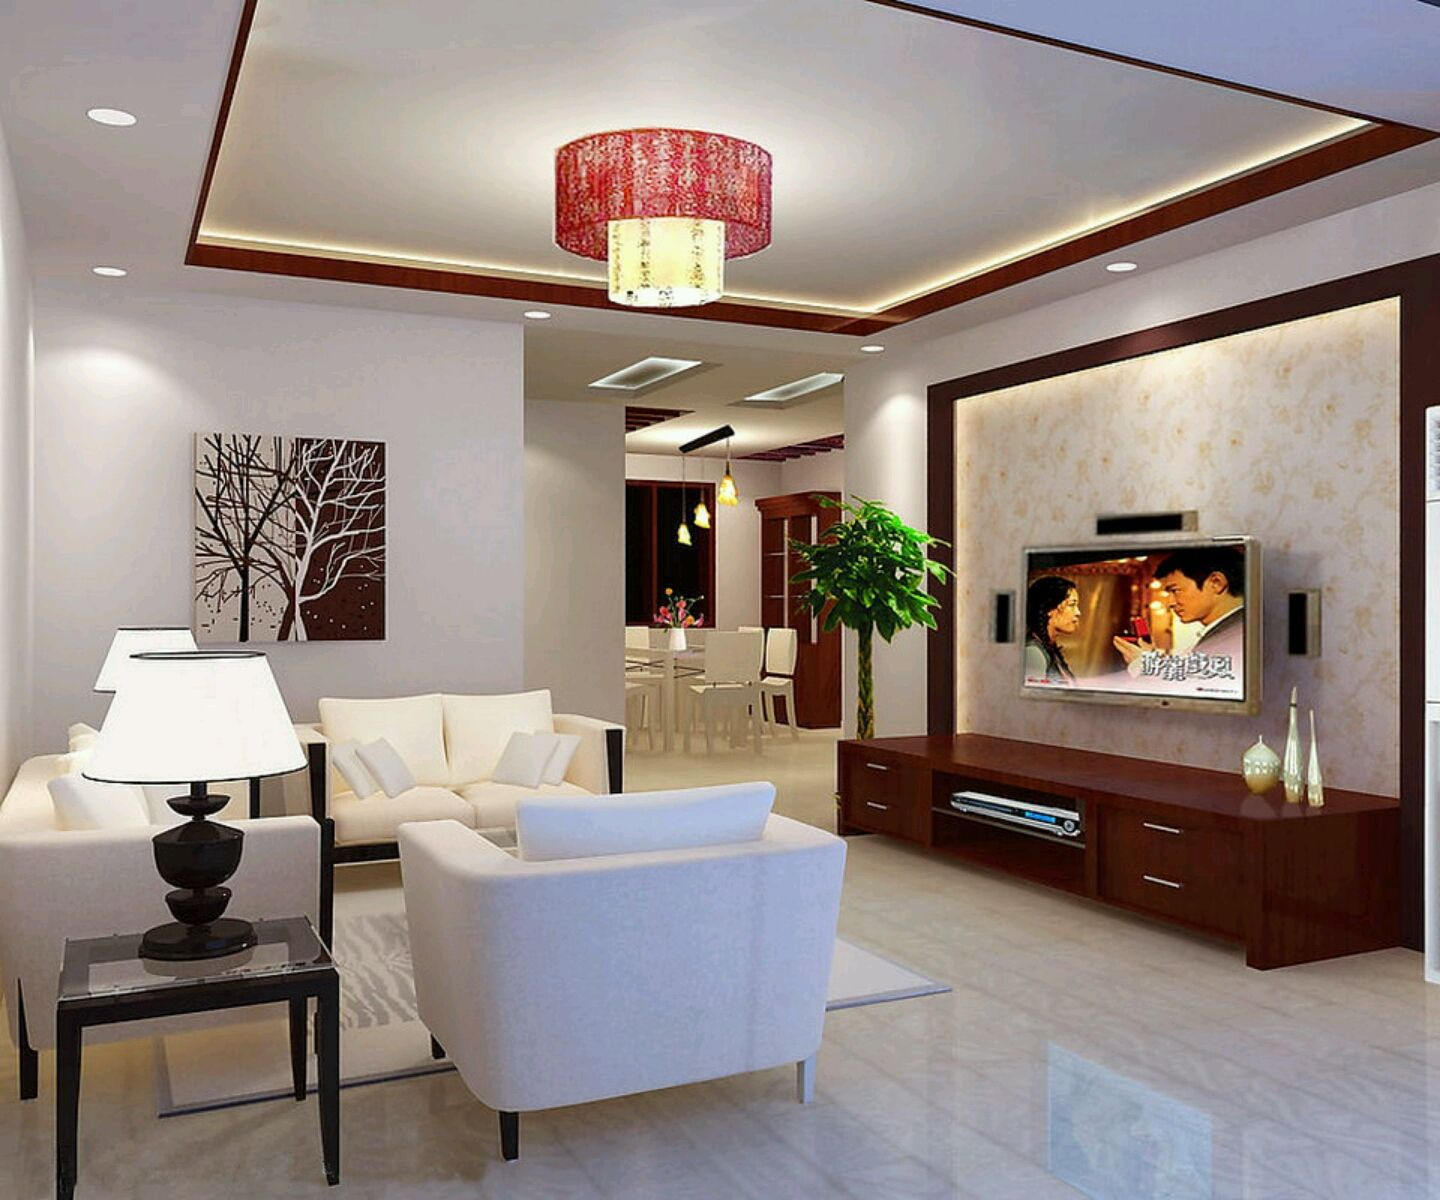 How to decorate a living room with low ceilings - The Best Ideas Of Low Ceiling Designs Solutions Modern Interior Decoration Living Rooms With Low Ceiling Designs Solutions